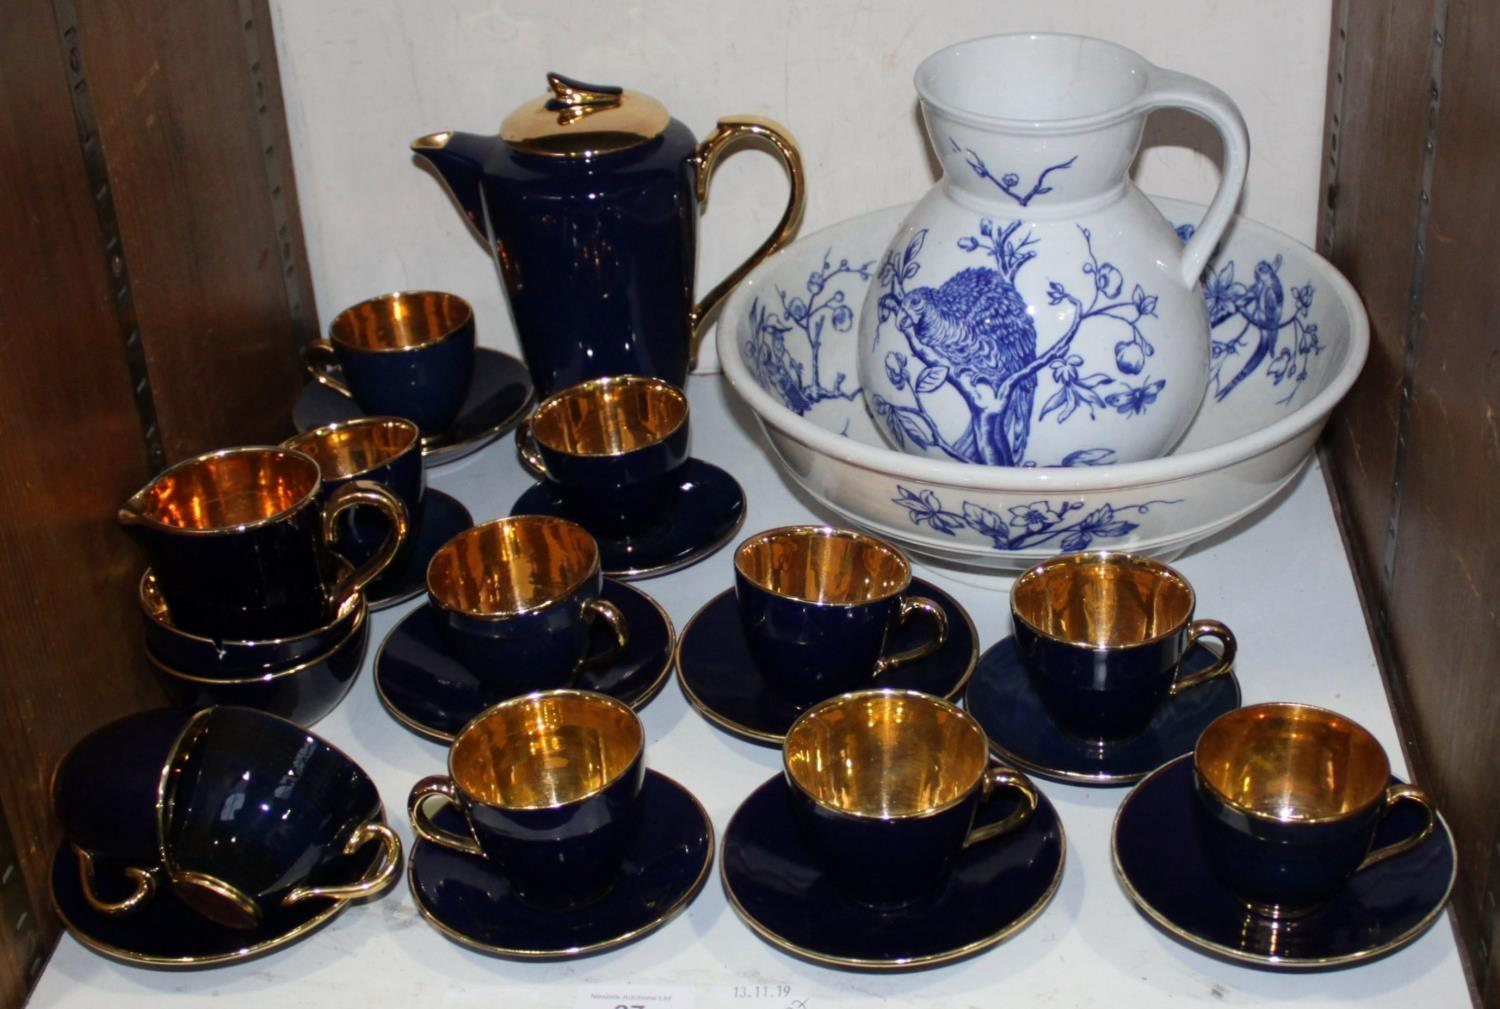 Lot 27 - SECTION 27. A Jersey Pottery blue and gilt matched part coffee set, together with a blue and white